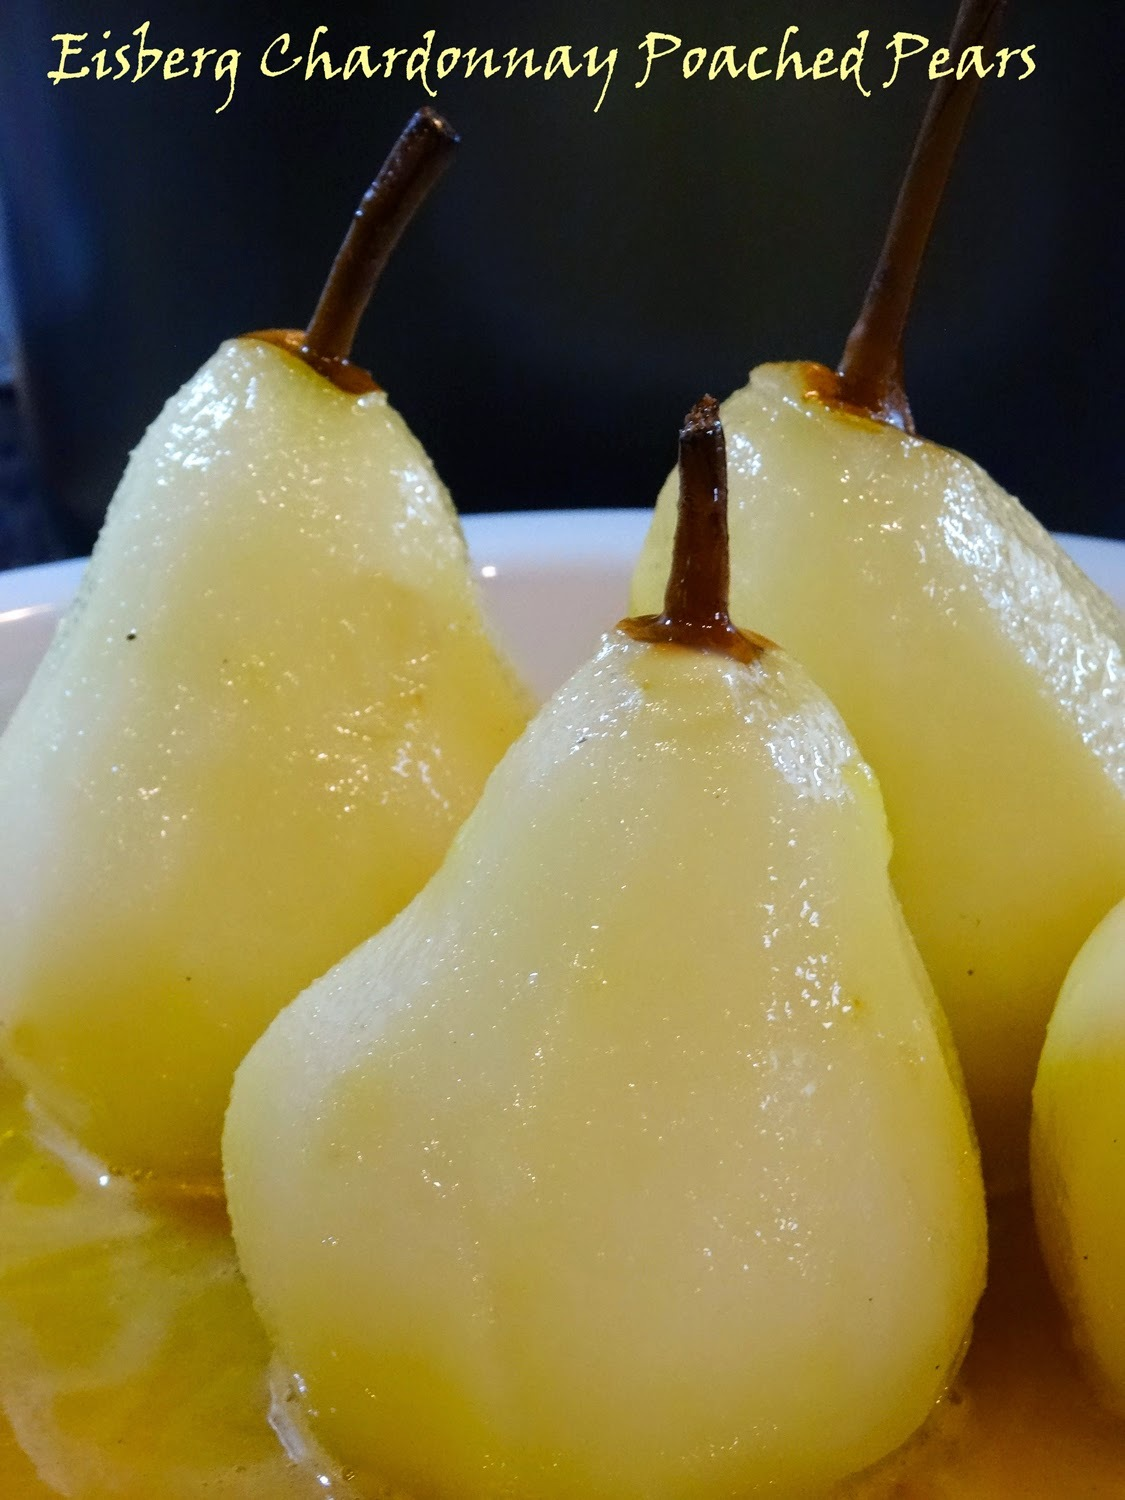 Chardonnay Poached Pears and a Slow Cooked Christmas